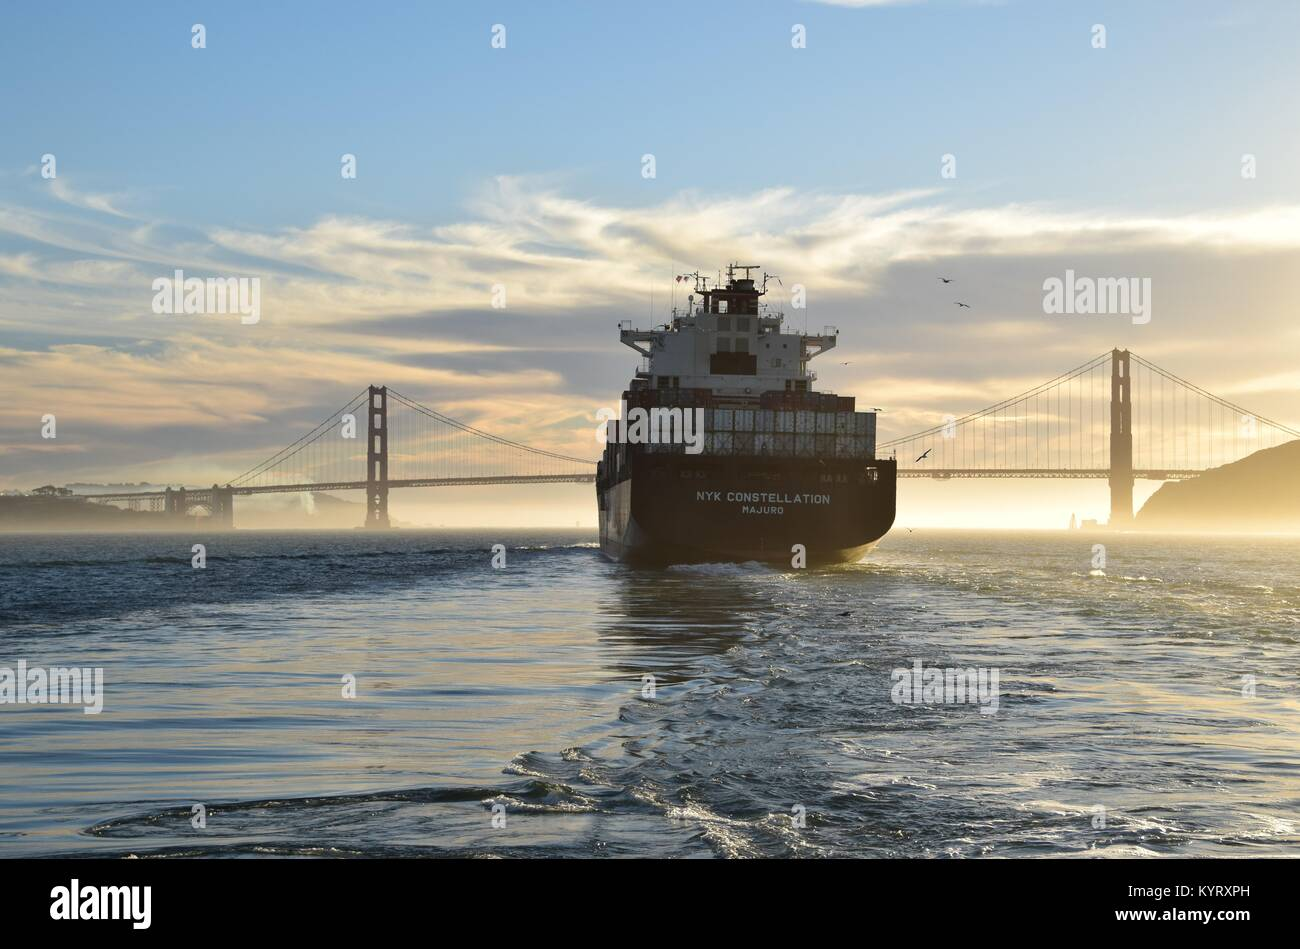 Container ship NYK Constellation leaves San Francisco Bay under the Golden Gate Bridge into the sunset. - Stock Image